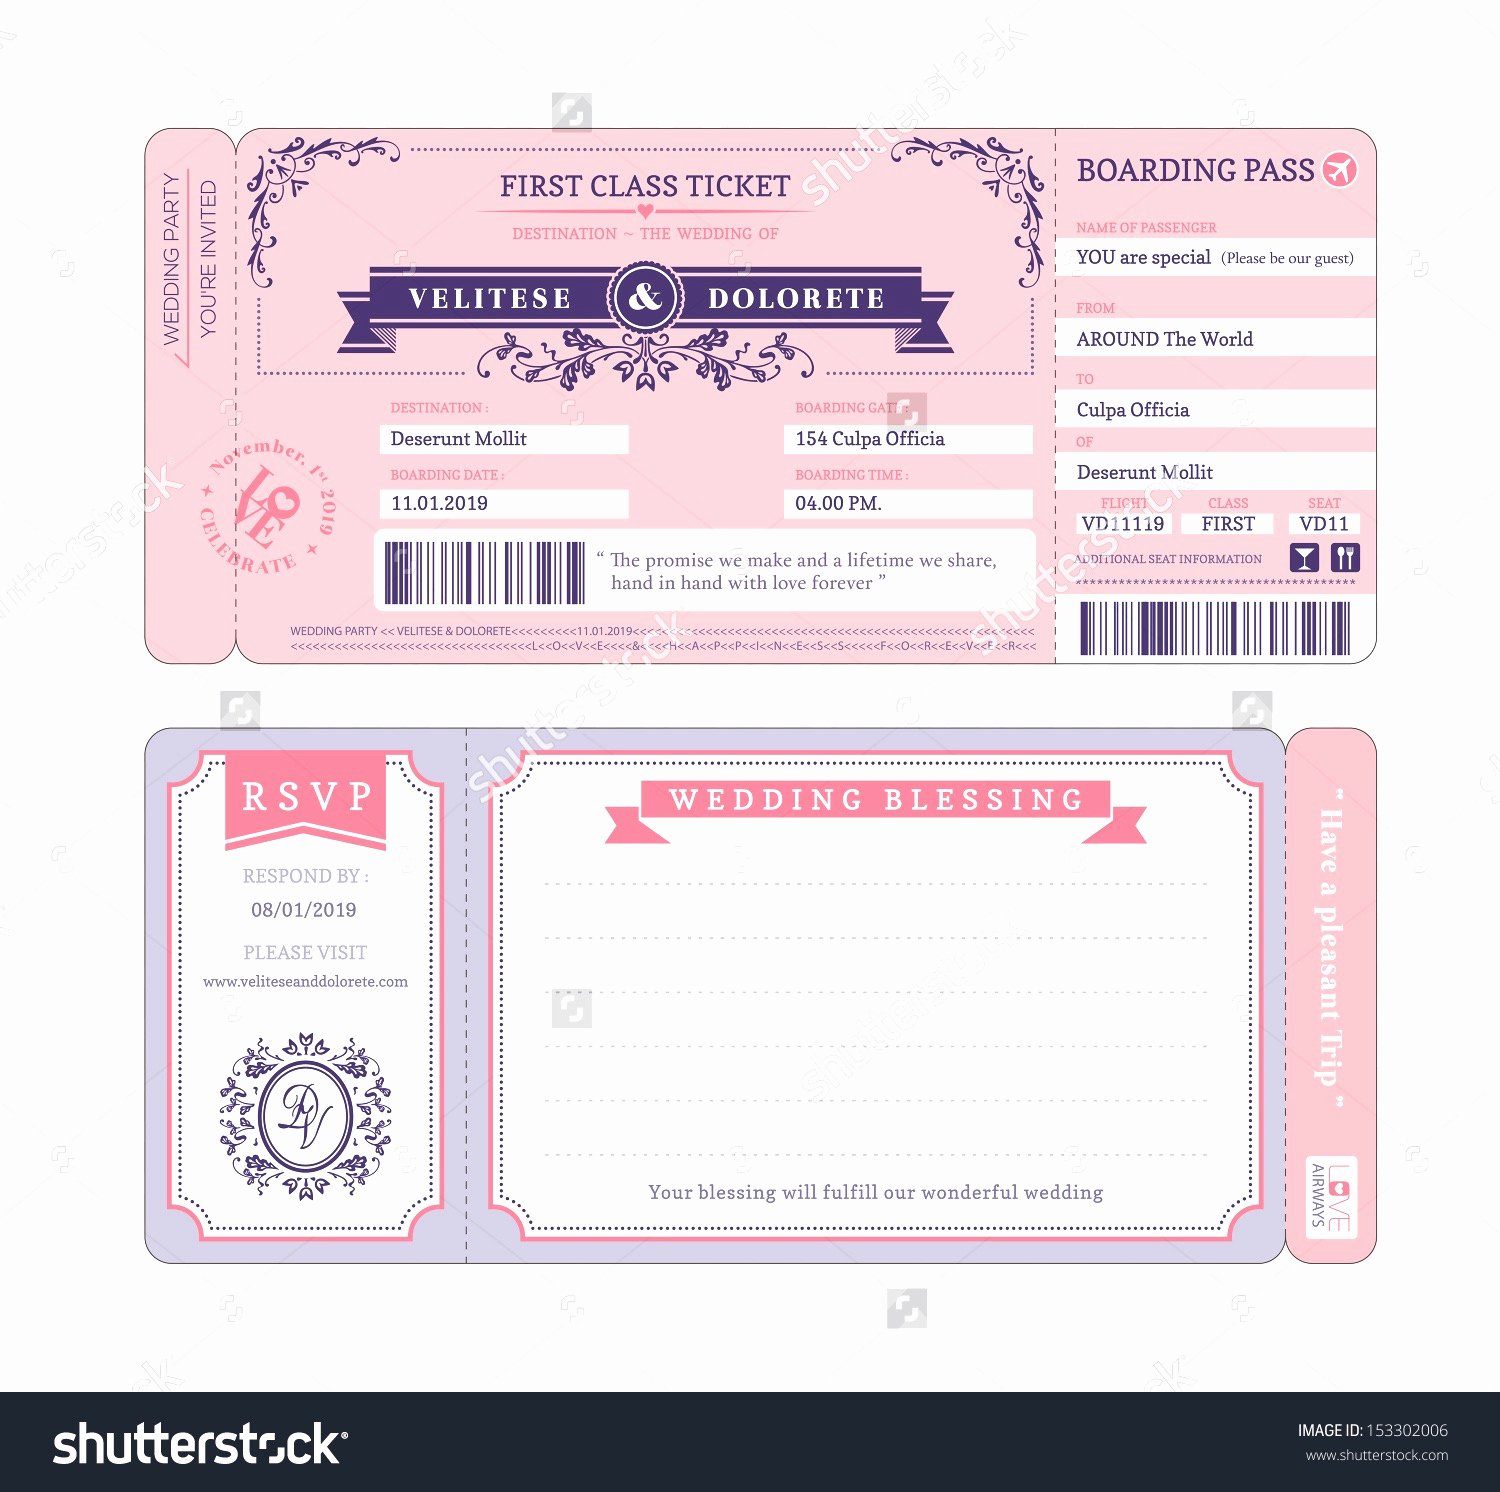 Boarding Pass Template Free Unique Airline Ticket Invitation Example Mughals